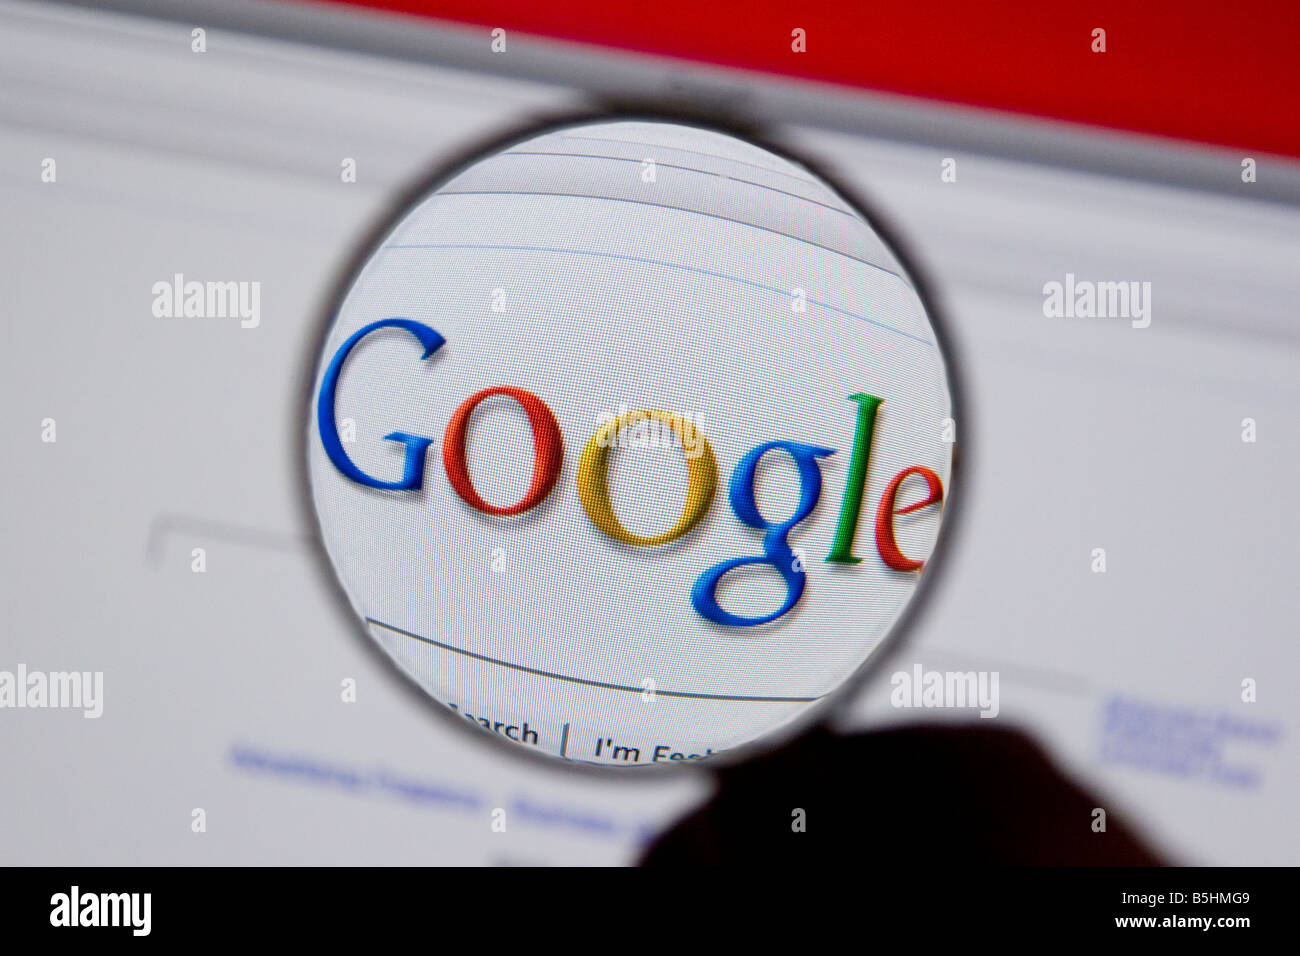 Google search engine Google logo on a computer screen with a magnifying glass. - Stock Image